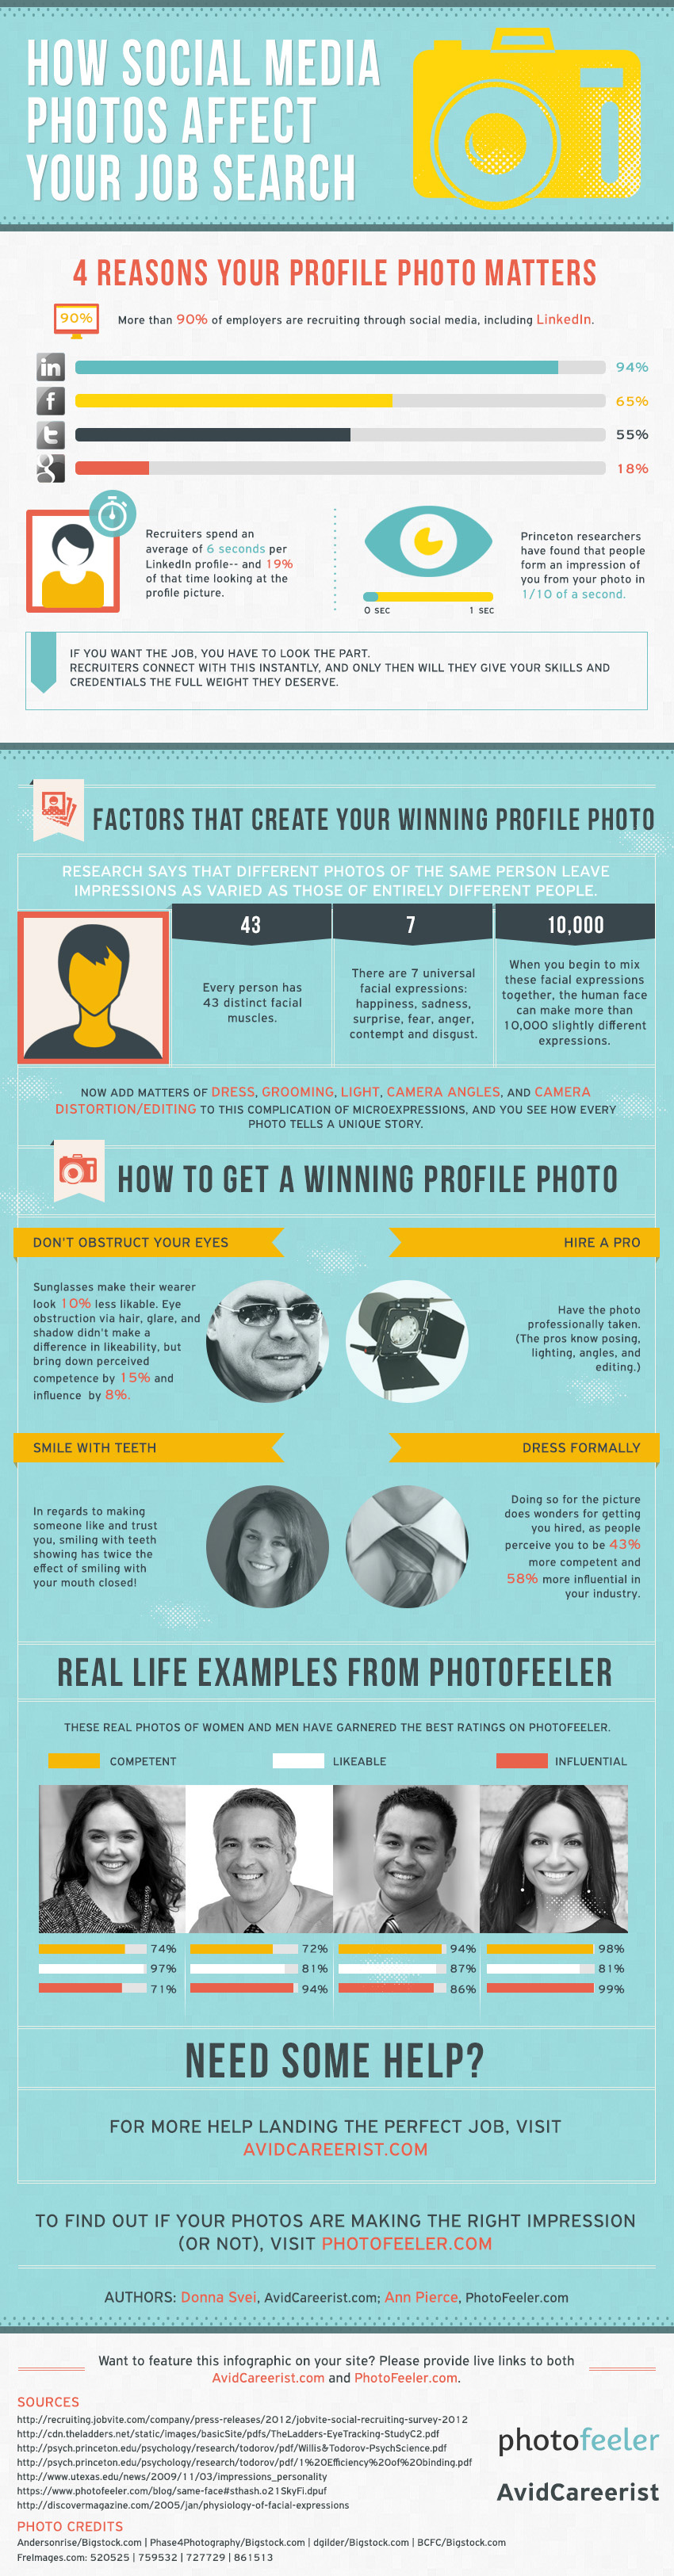 How Your Facebook Photo Is Affecting Your Job Search